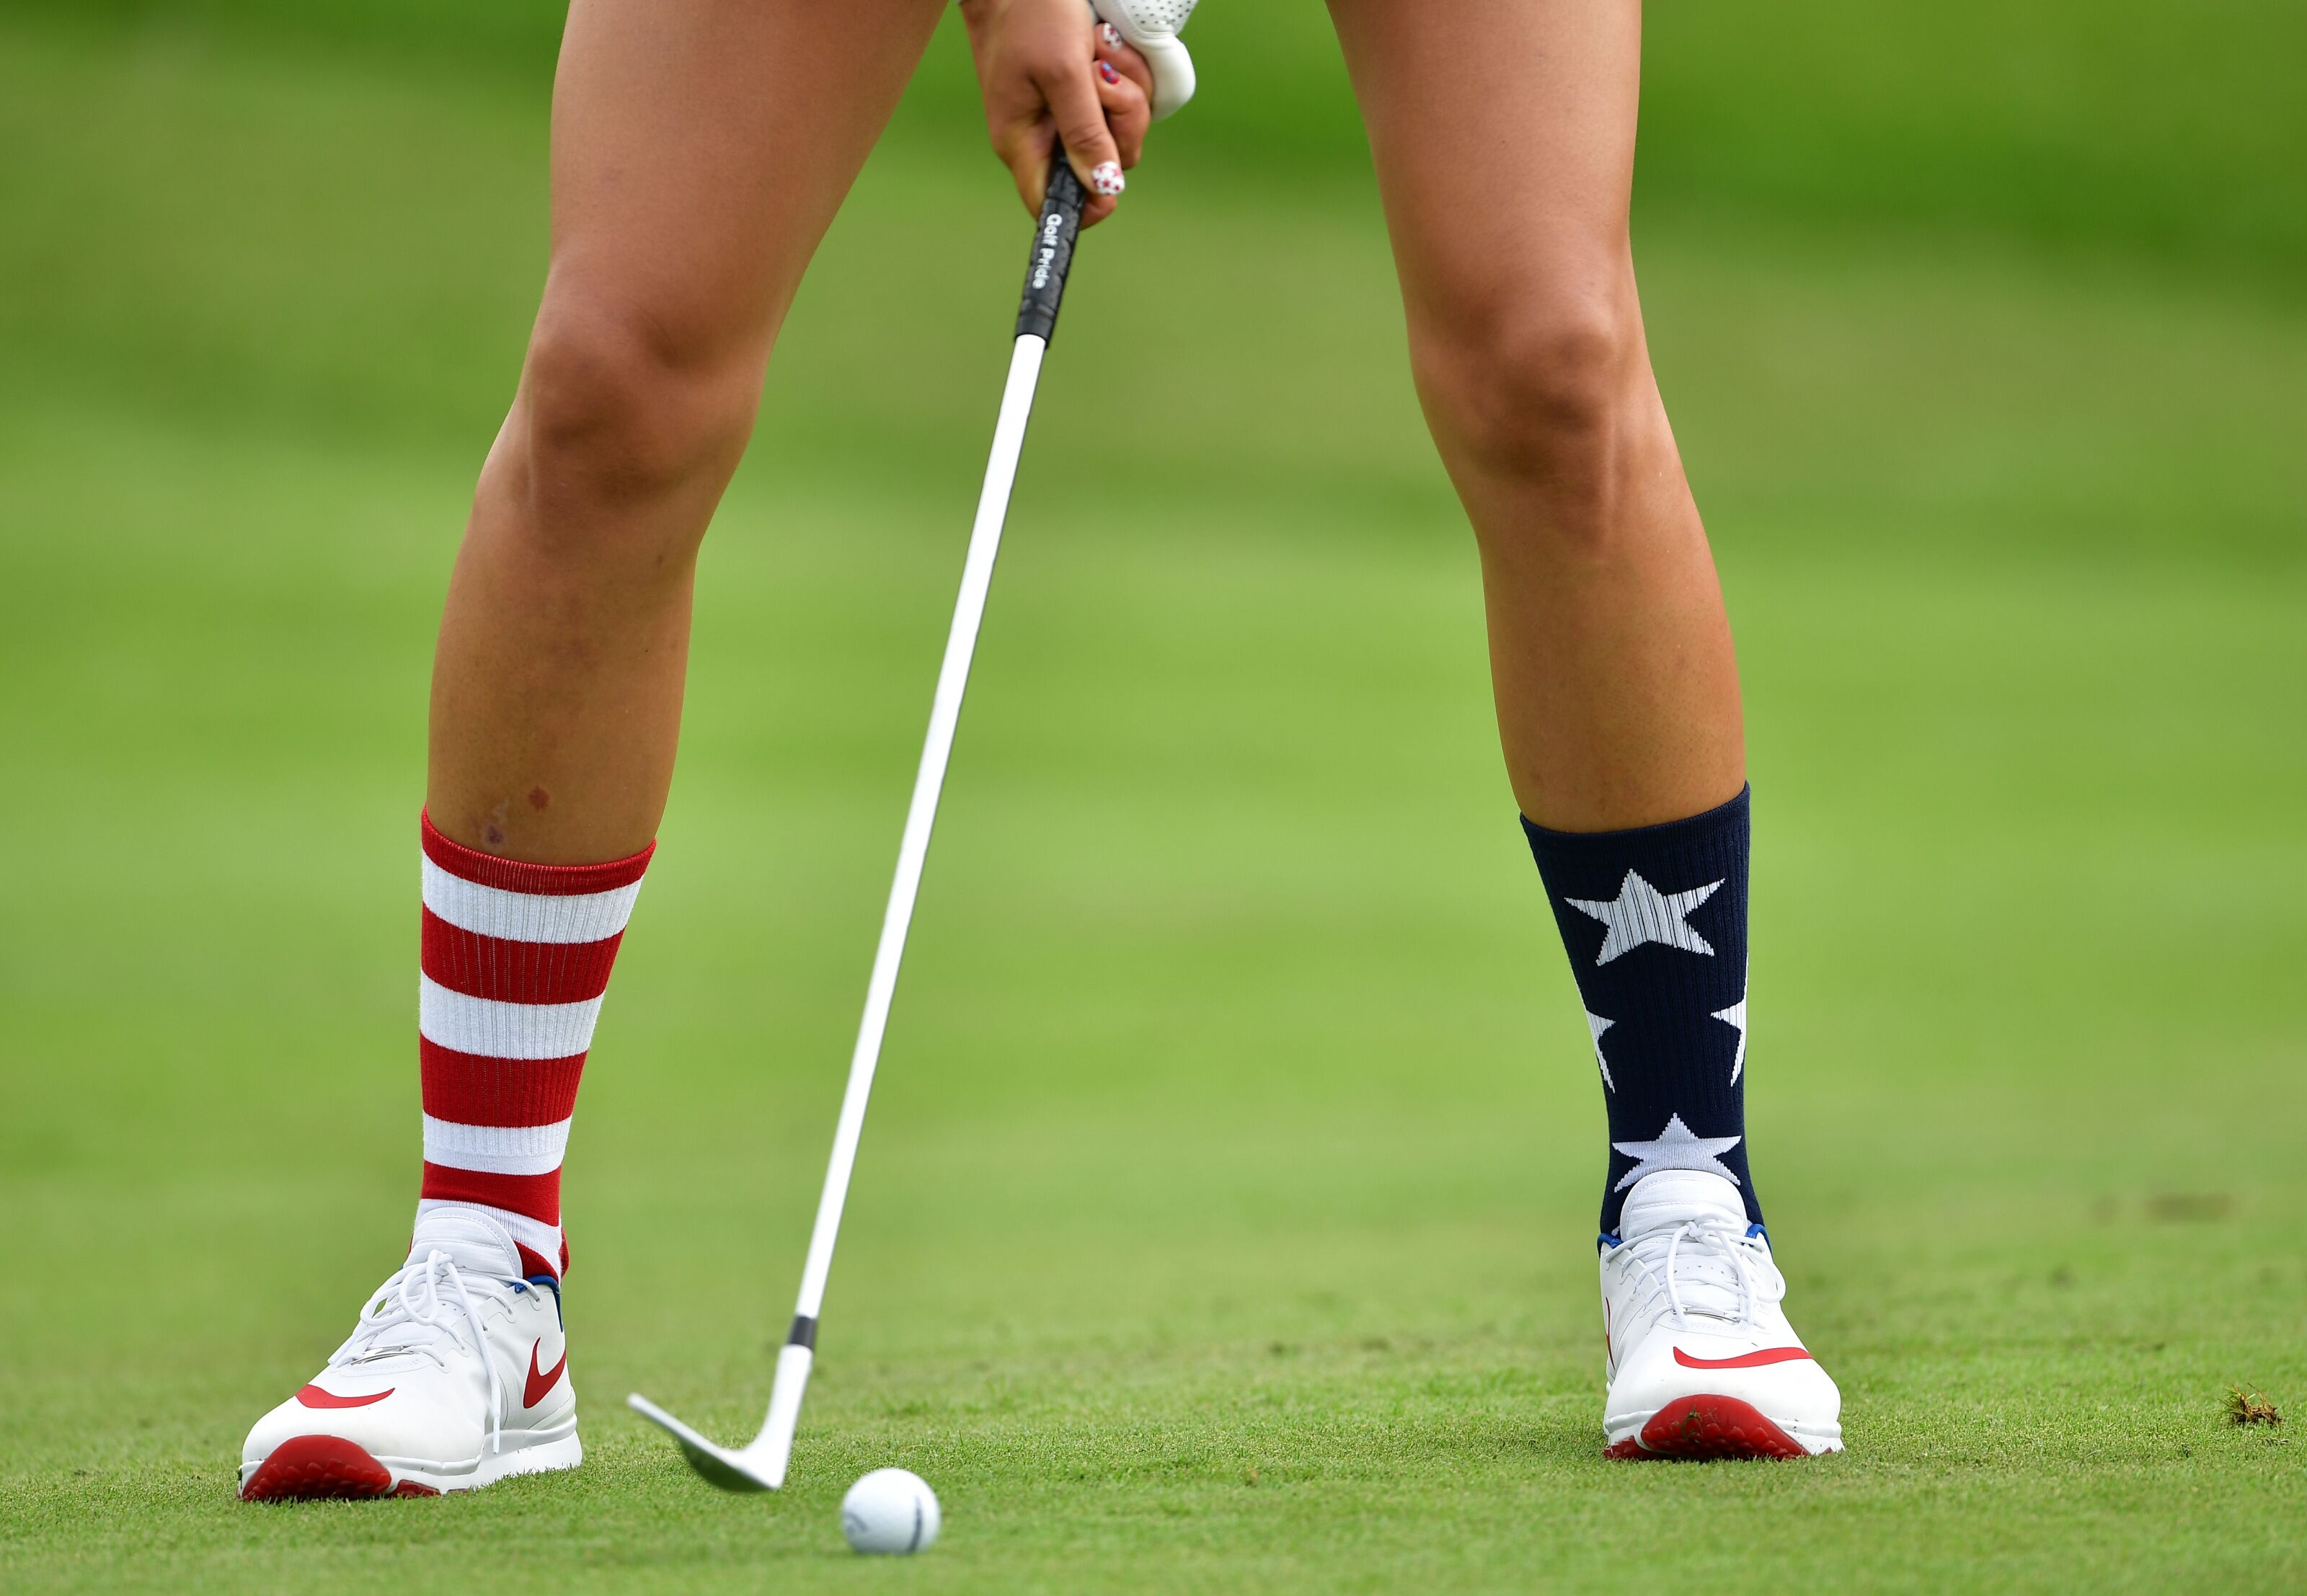 Golf Fashion Gone Wild: The Battle of the Short Socks